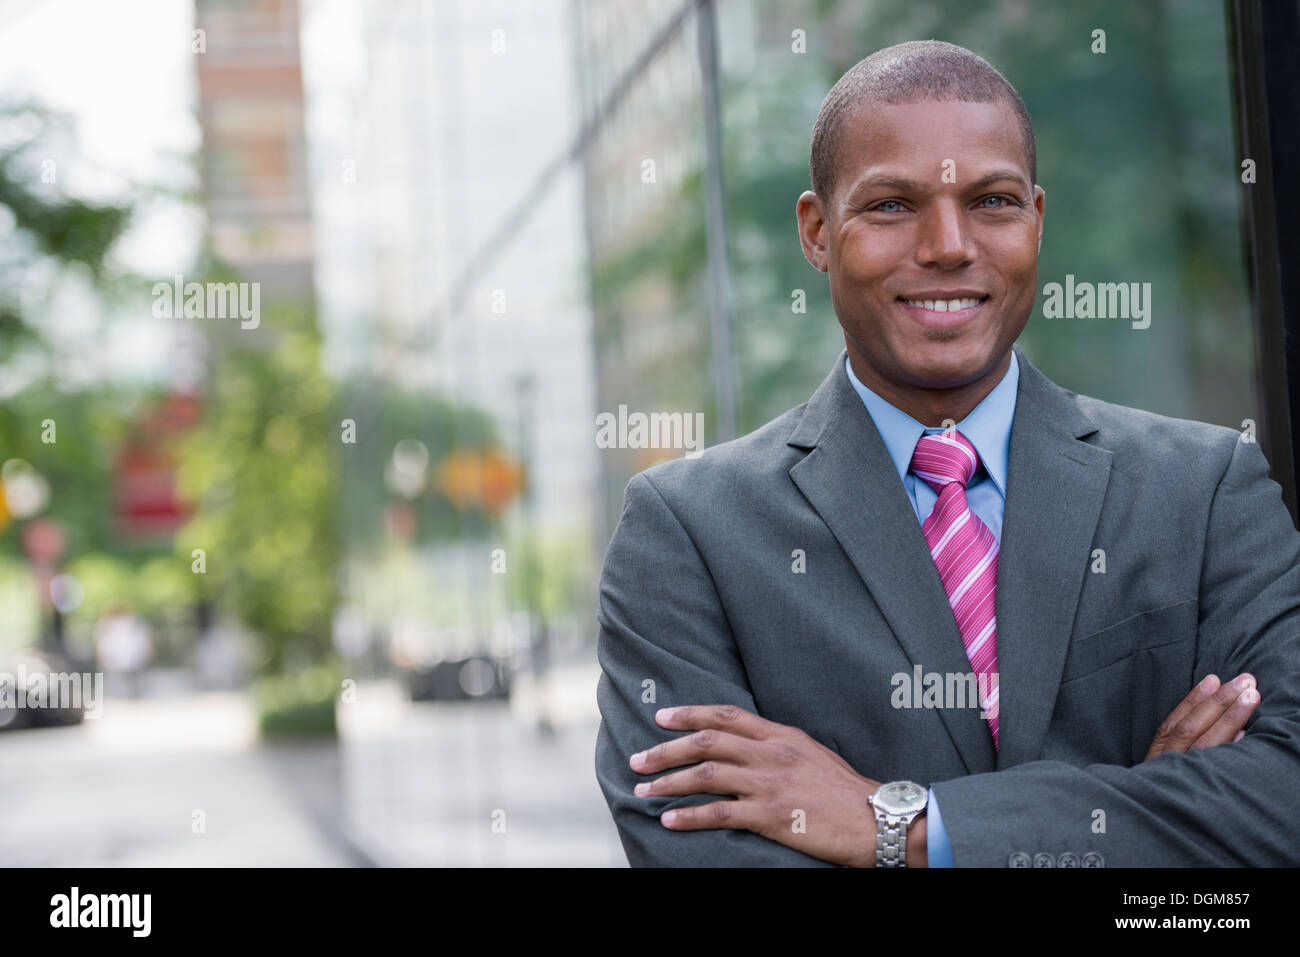 A young man in a business suit with a blue shirt and red tie. On a city street. Smiling at the camera. Stock Photo